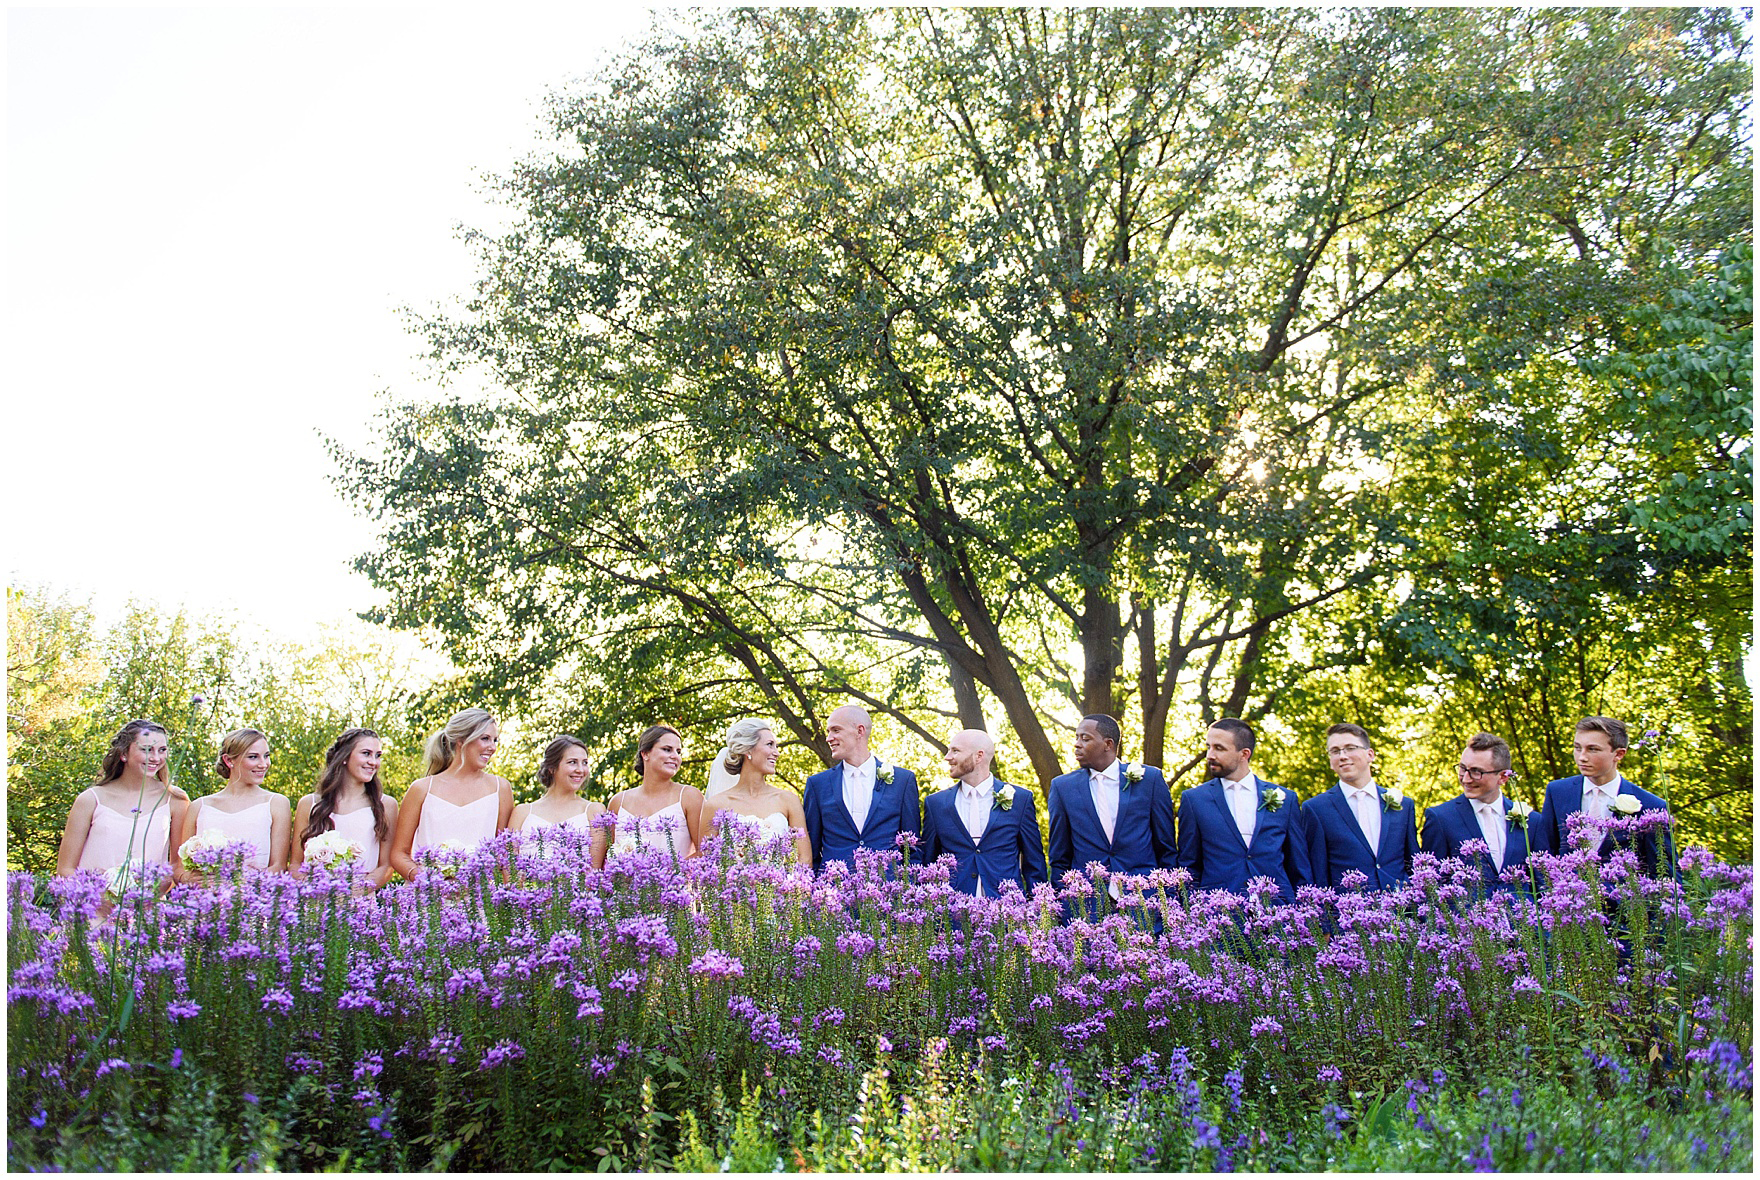 The bridal party poses for portraits at Cantigny Park for a St. Josephs Downers Grove Pinstripes Oak Brook, Illinois wedding.